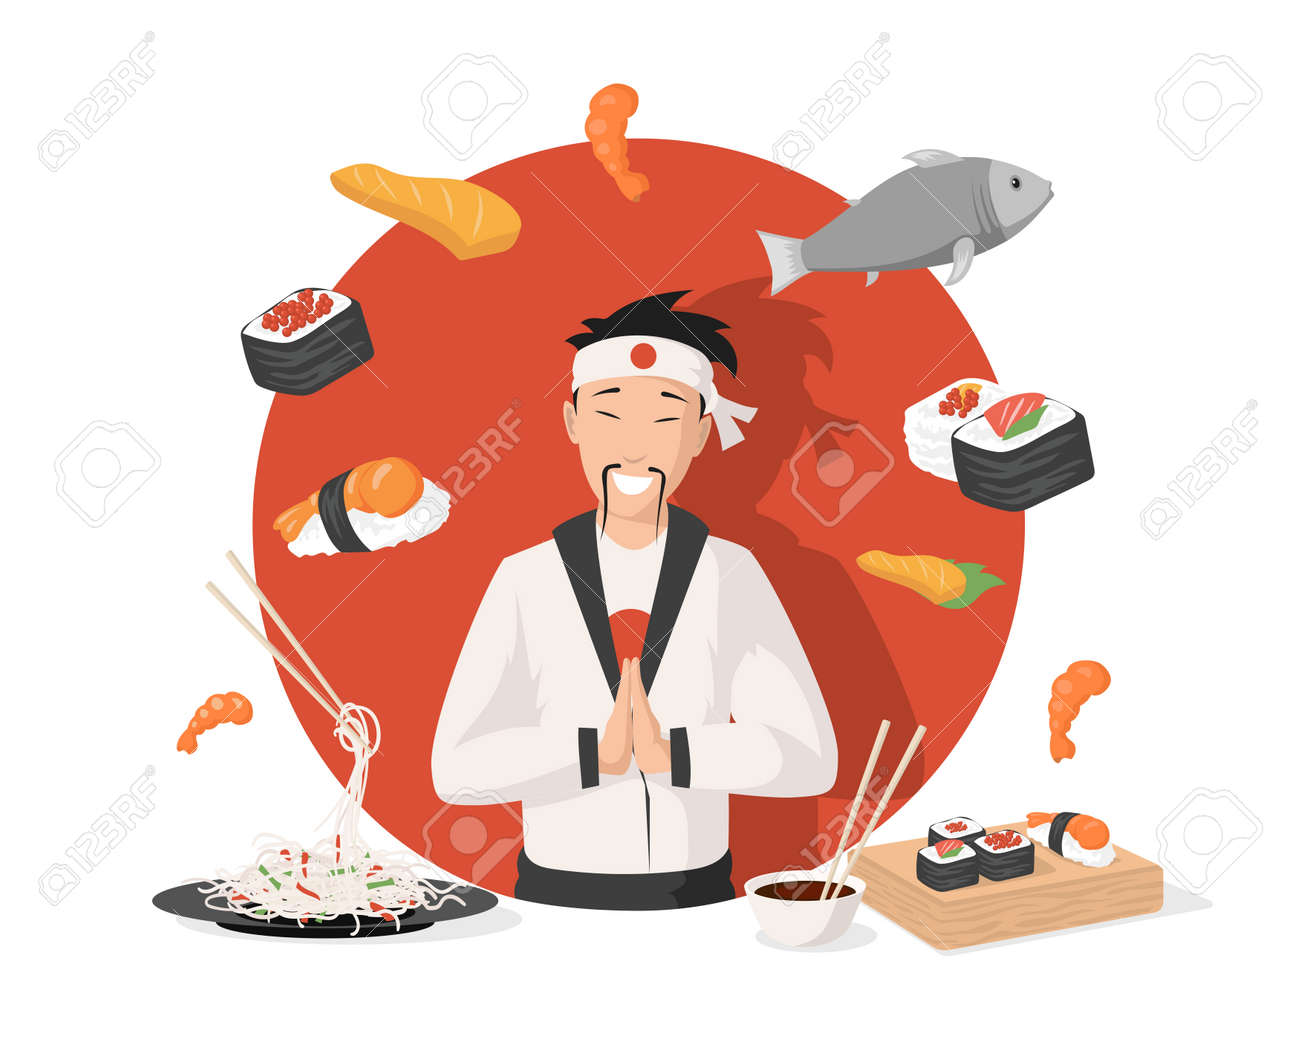 Chef in traditional Japanese kimono vector flat illustration. Japanese cuisine, sushi, rolls, shrimps, and noodles. - 171745921